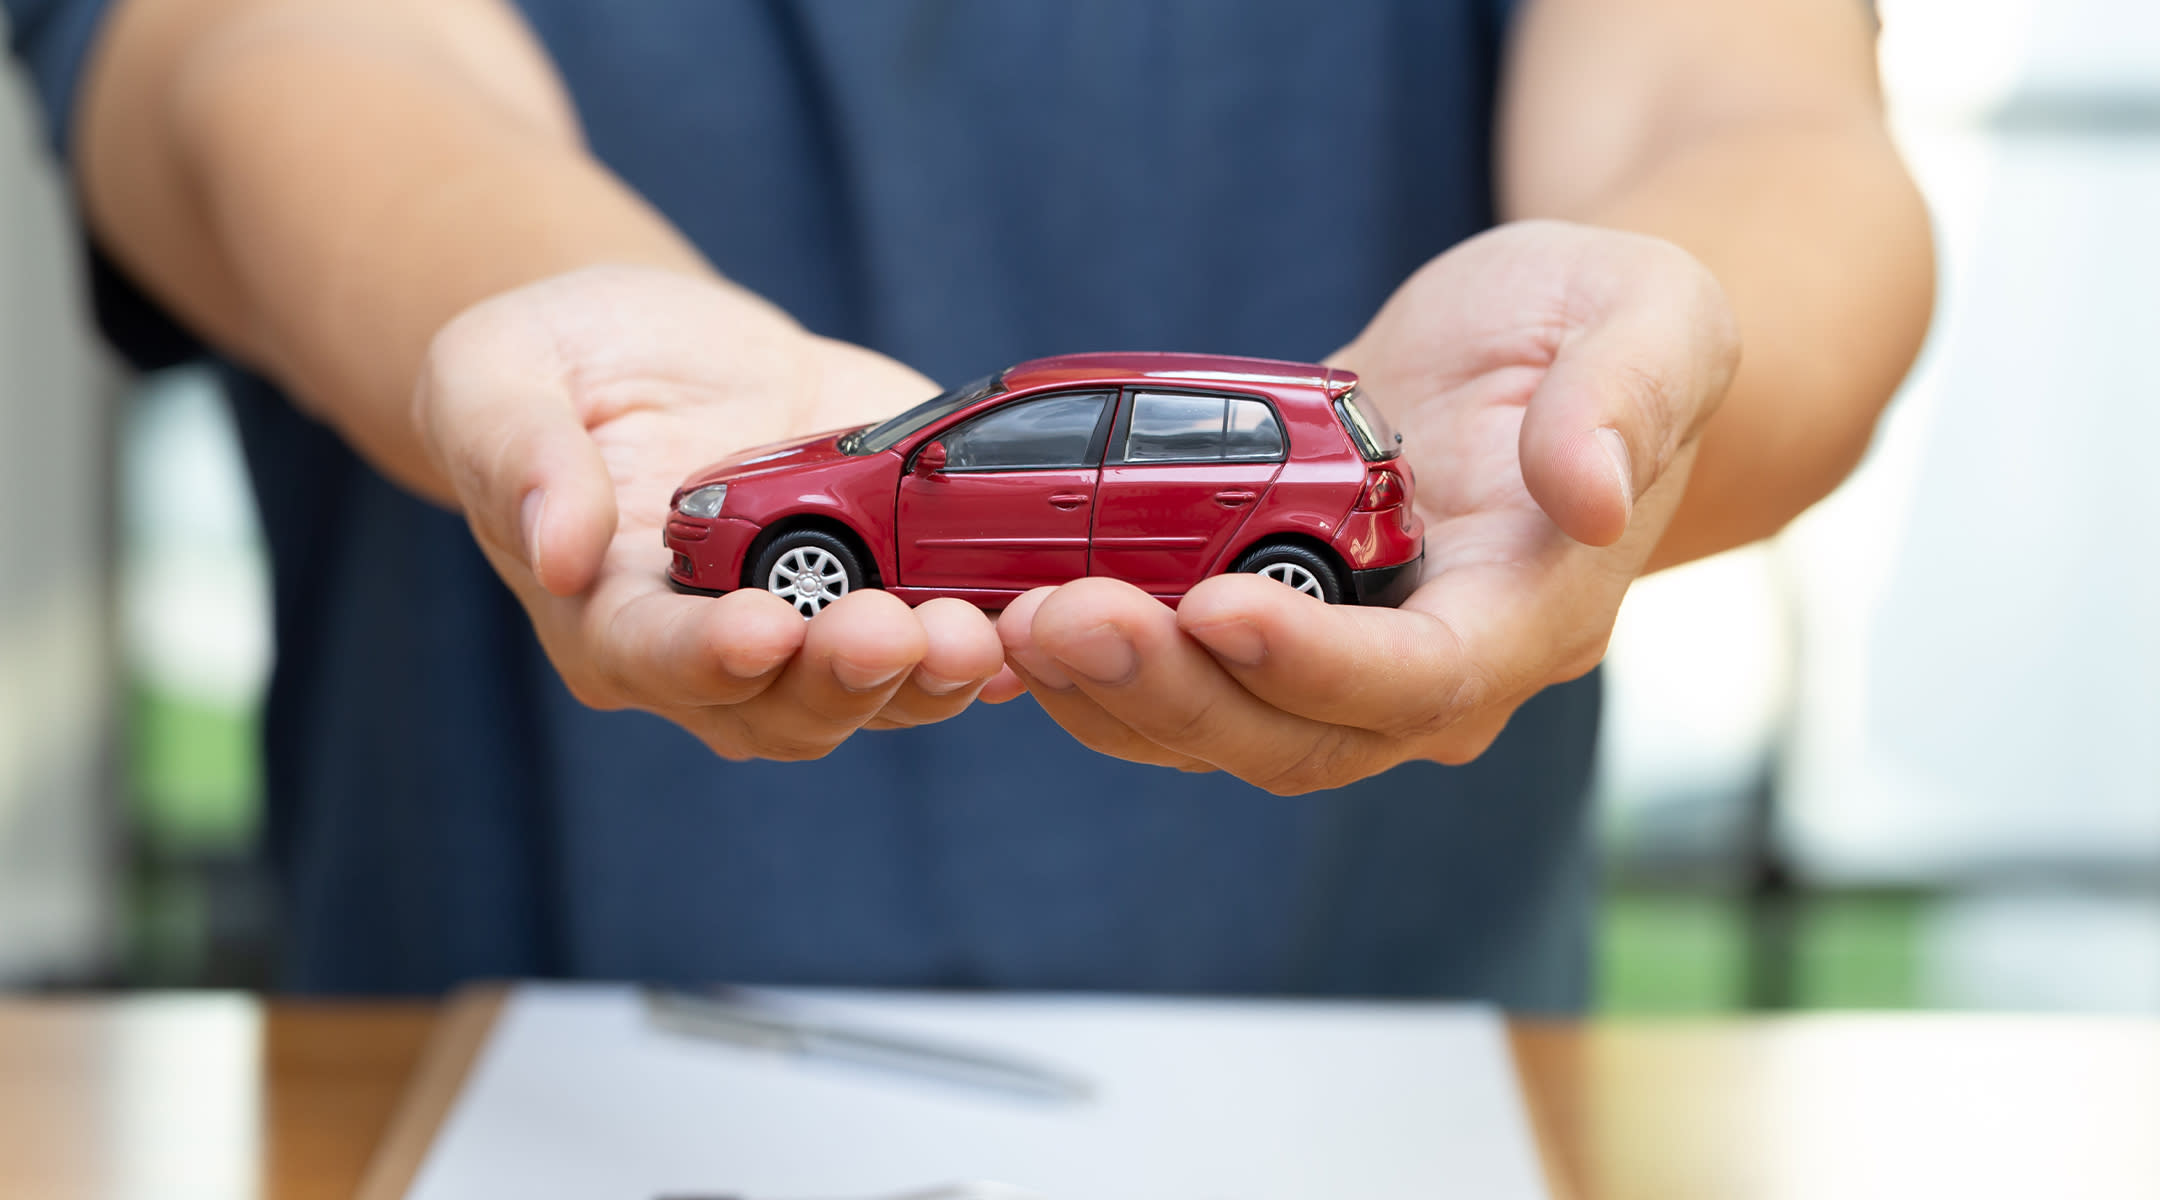 person holding toy car